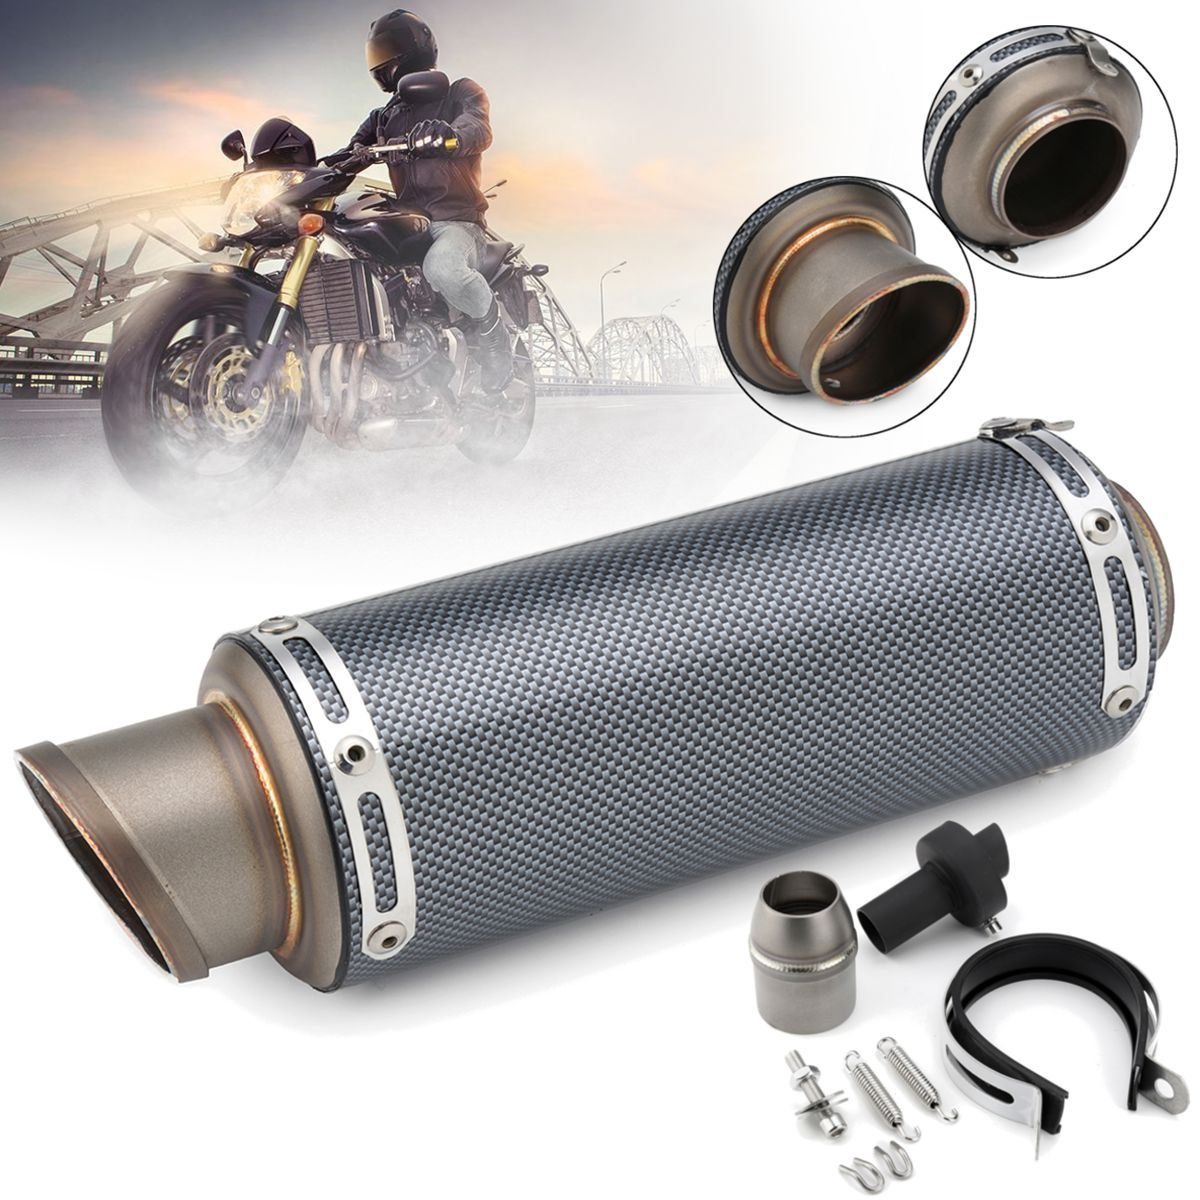 38~51mm Universal Carbon Fiber Titunium Stainless Steel Exhaust Muffler Pipe Kit For Motorcycle ATV Dirt Bike Scooter Quad